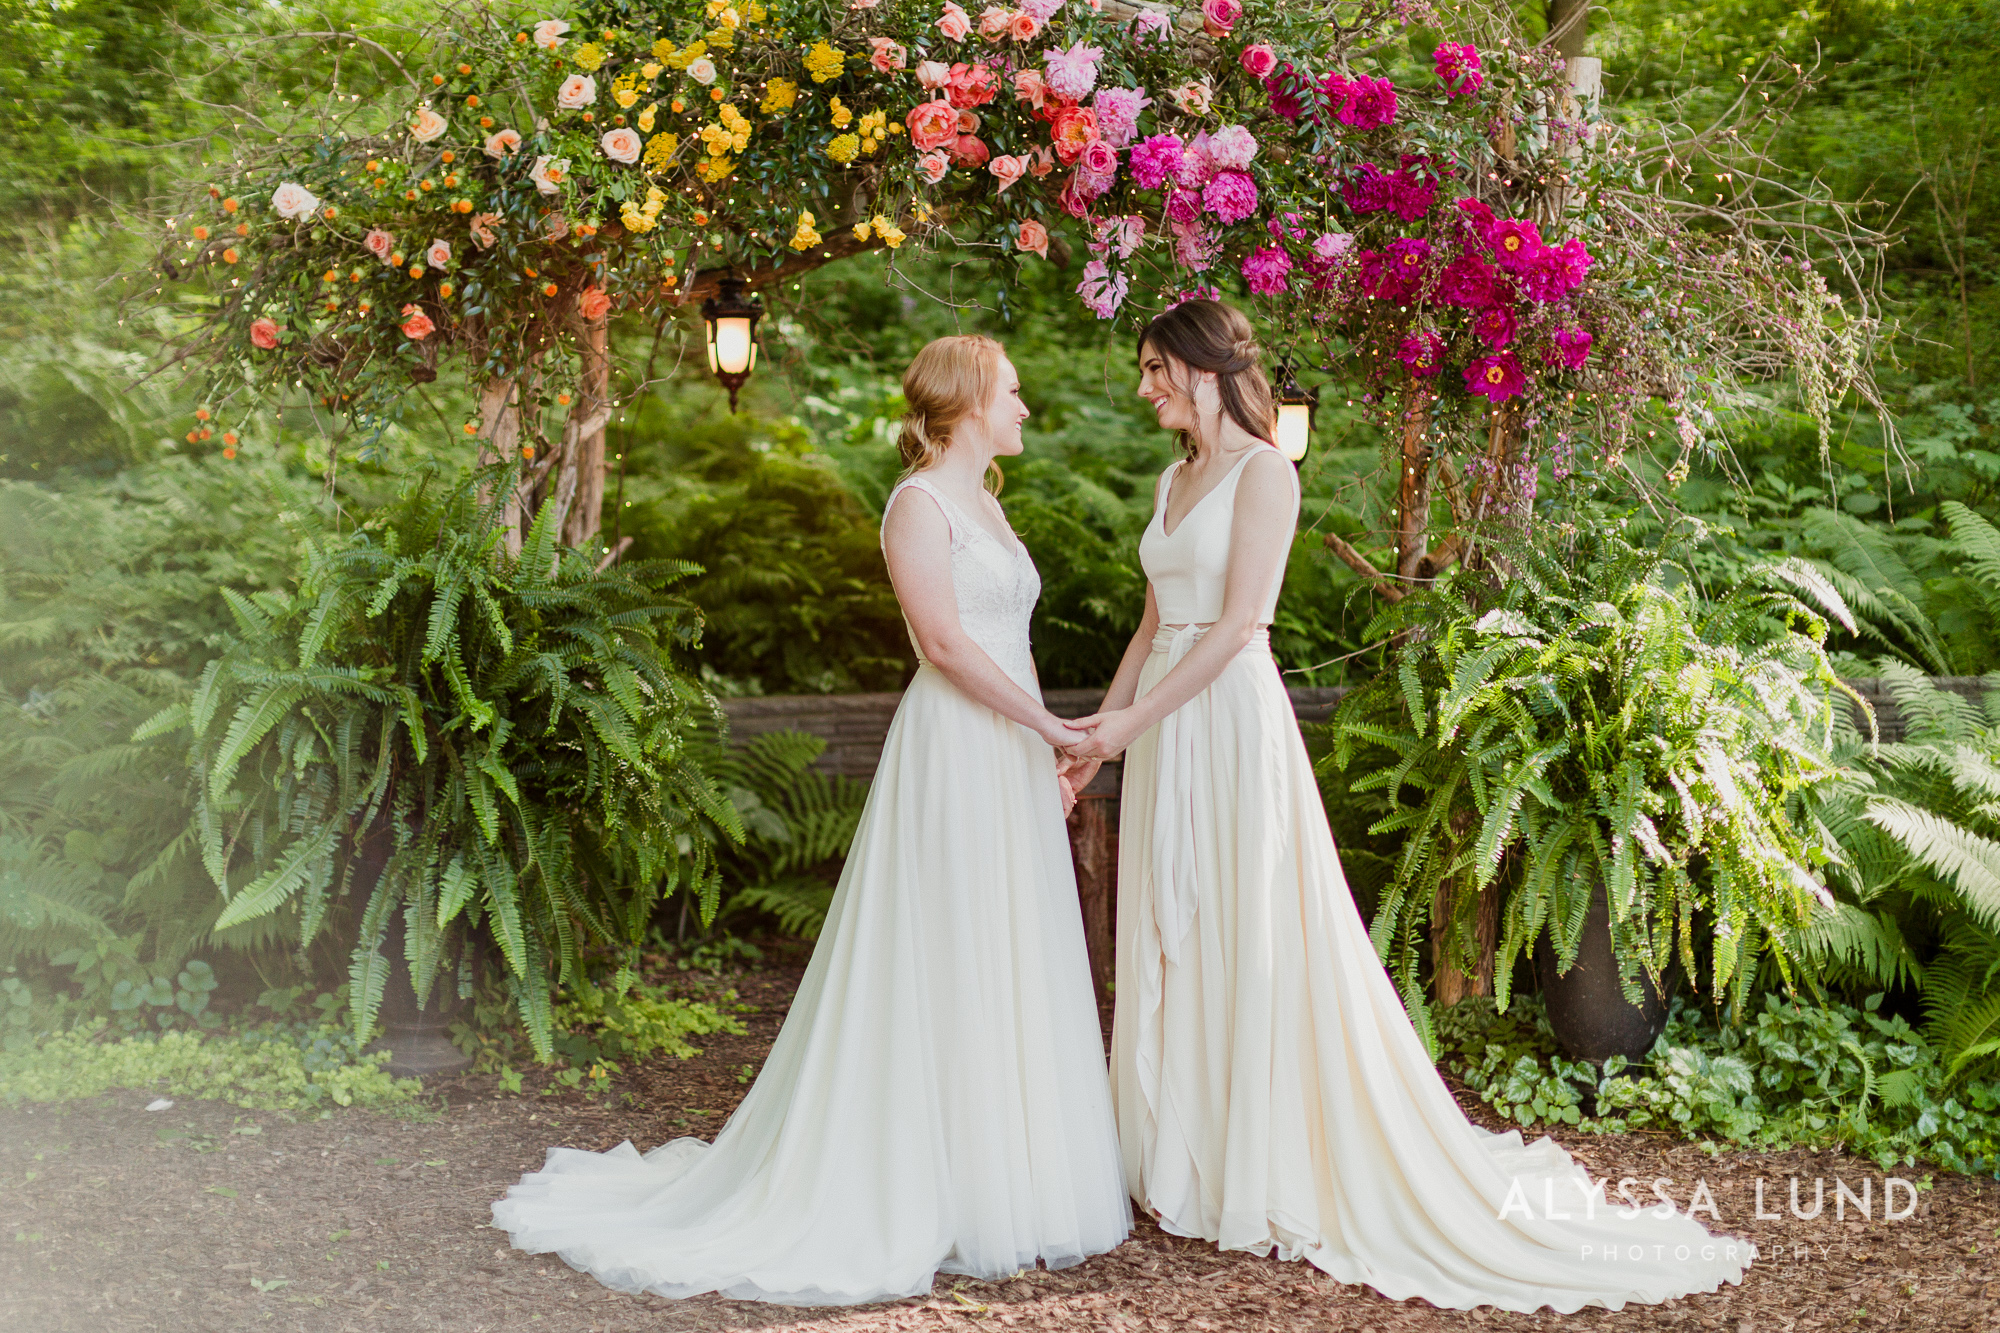 Queer wedding photography inspiration by Alyssa Lund Photography-21.jpg